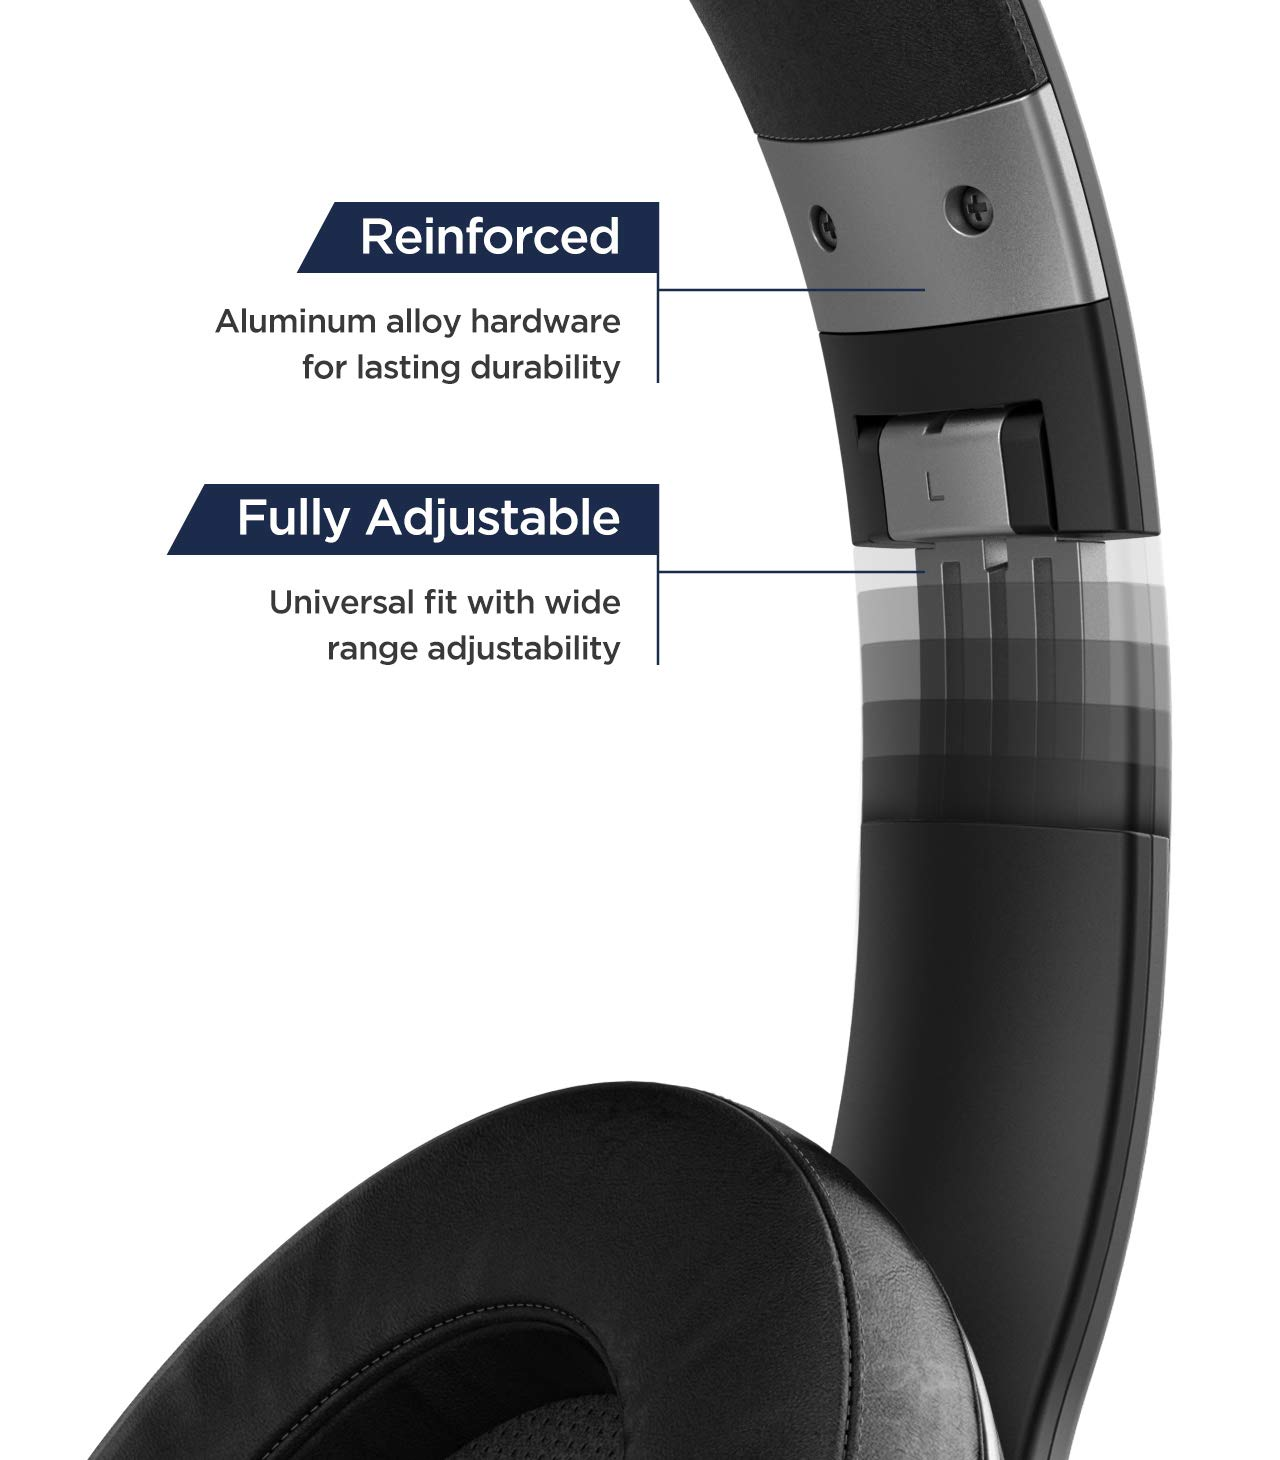 Blackbay Wireless iPhone Headphones with Lightning Connector (Apple MFi Certified) Bluetooth Earphones for iPhone 7, 8, Xr, Xs Max (w/Built-in Mic) ...